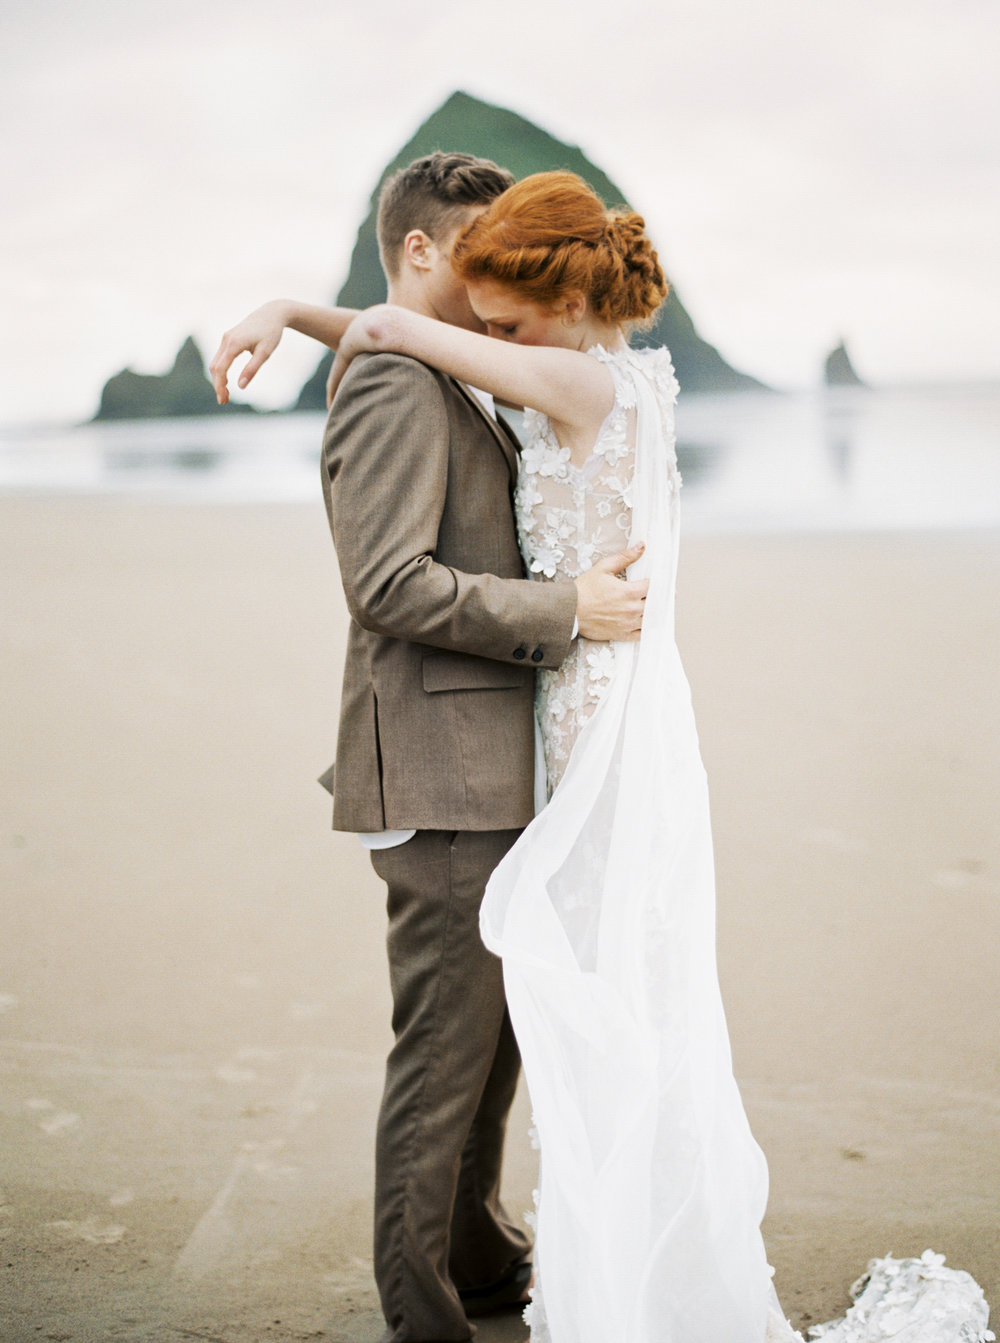 022@outlivecreative_cannon_beach_destination_wedding_photographer_&_videographer.jpg